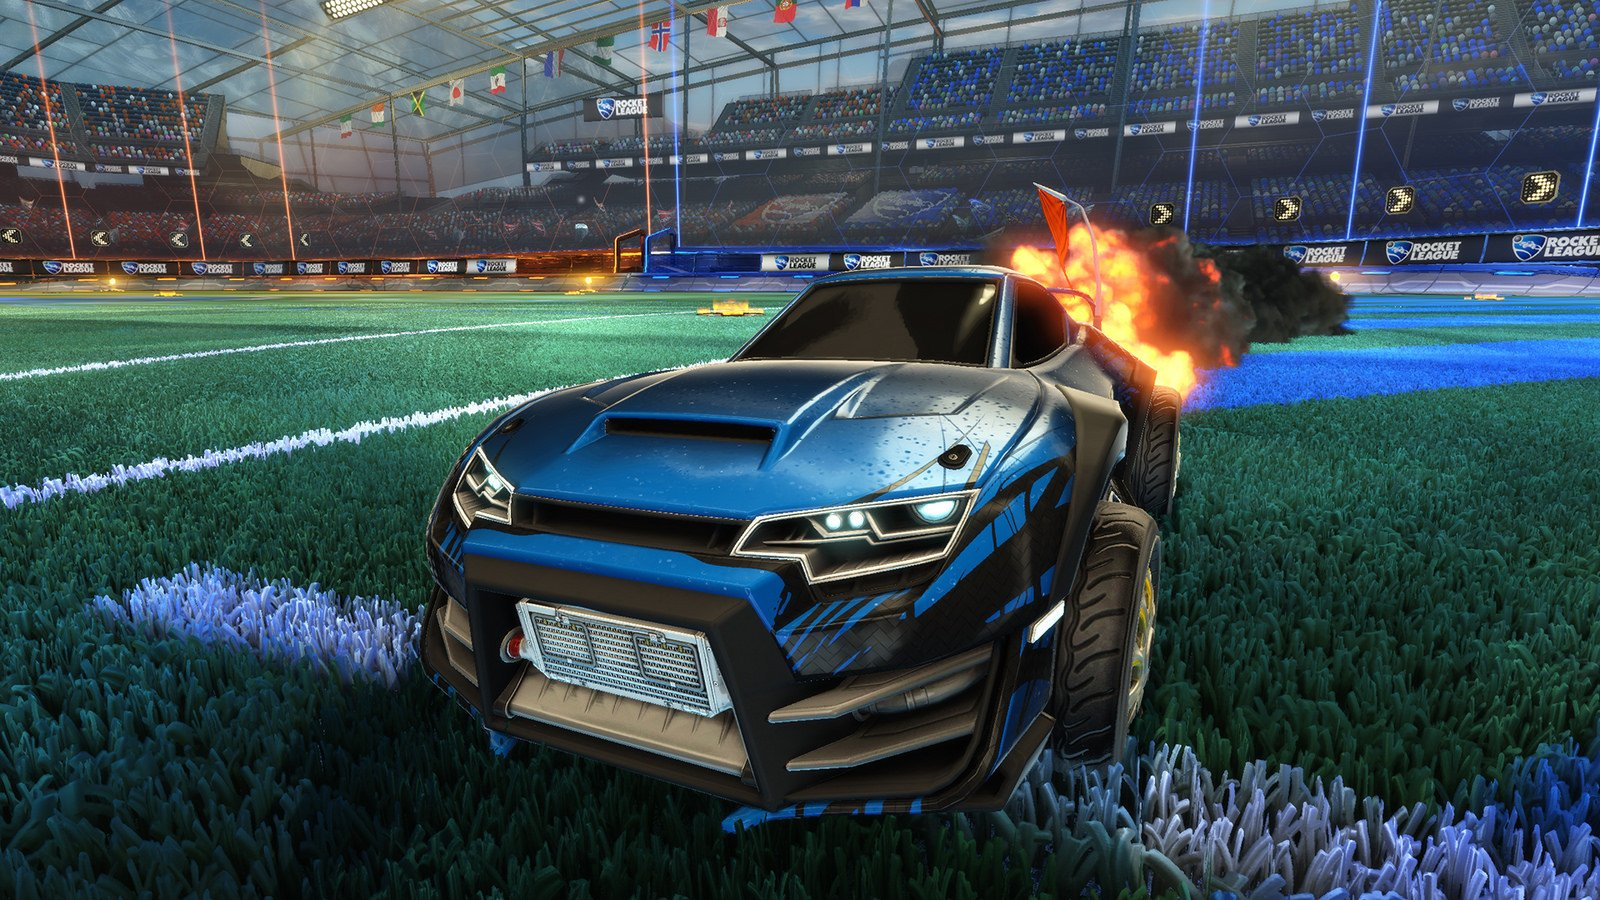 rocket league game computer wallpaper 61736